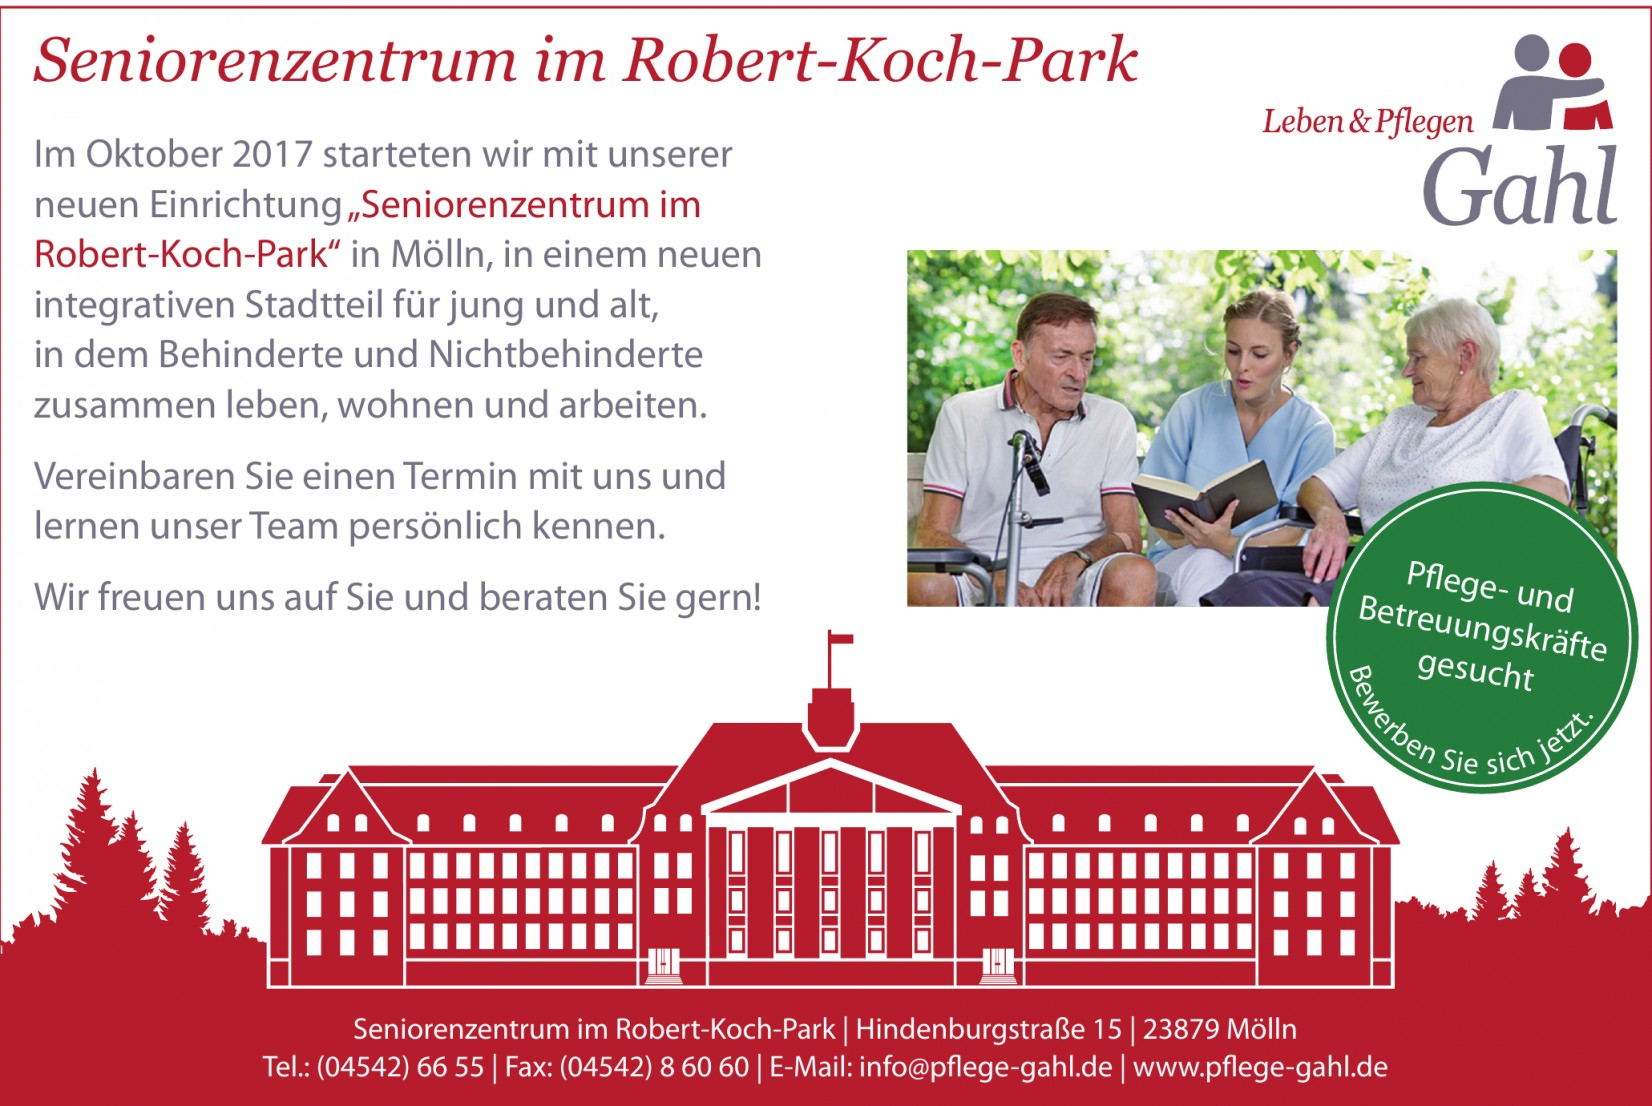 Seniorenzentrum im Robert-Koch-Park